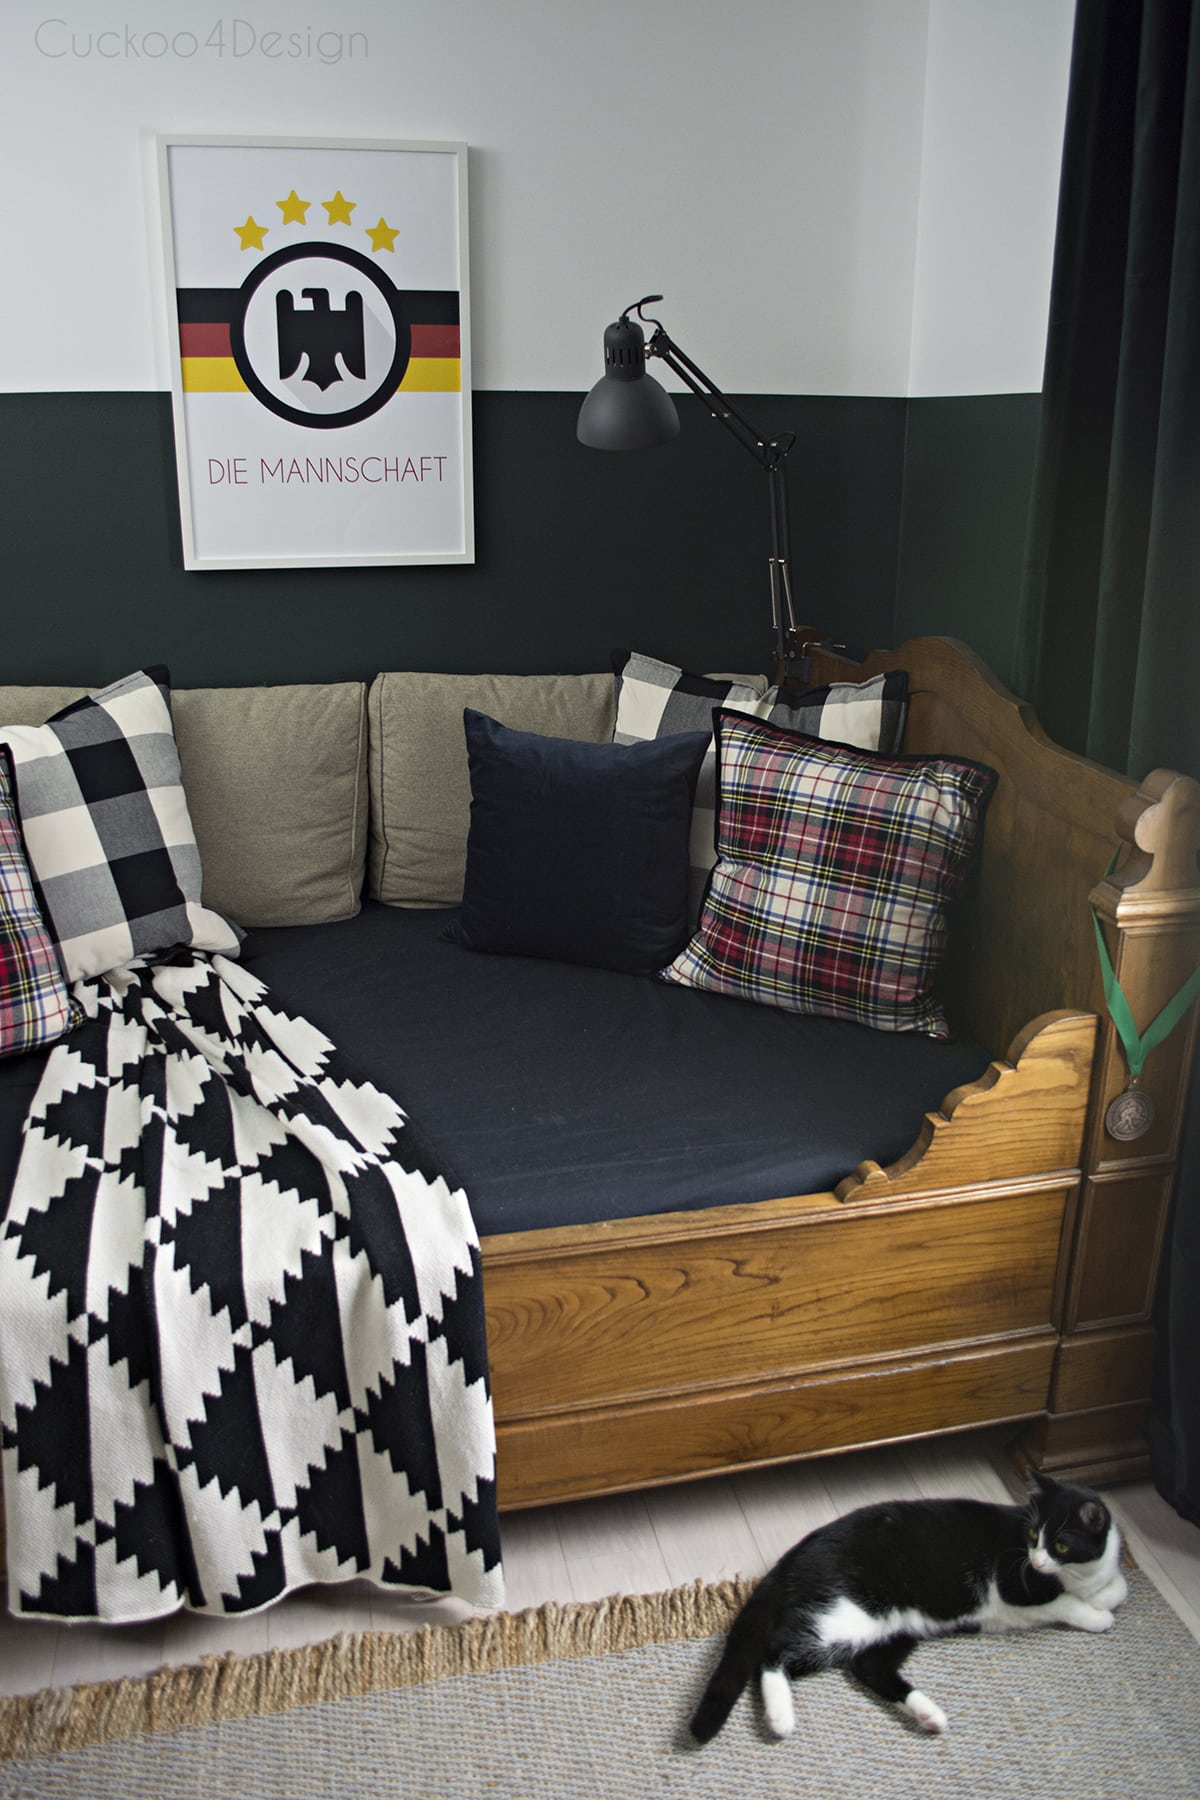 Butterscotch Leather Butterfly Chair In Sophisticated Boys Bedroom With Dark Green Walls Mixed Plaids And